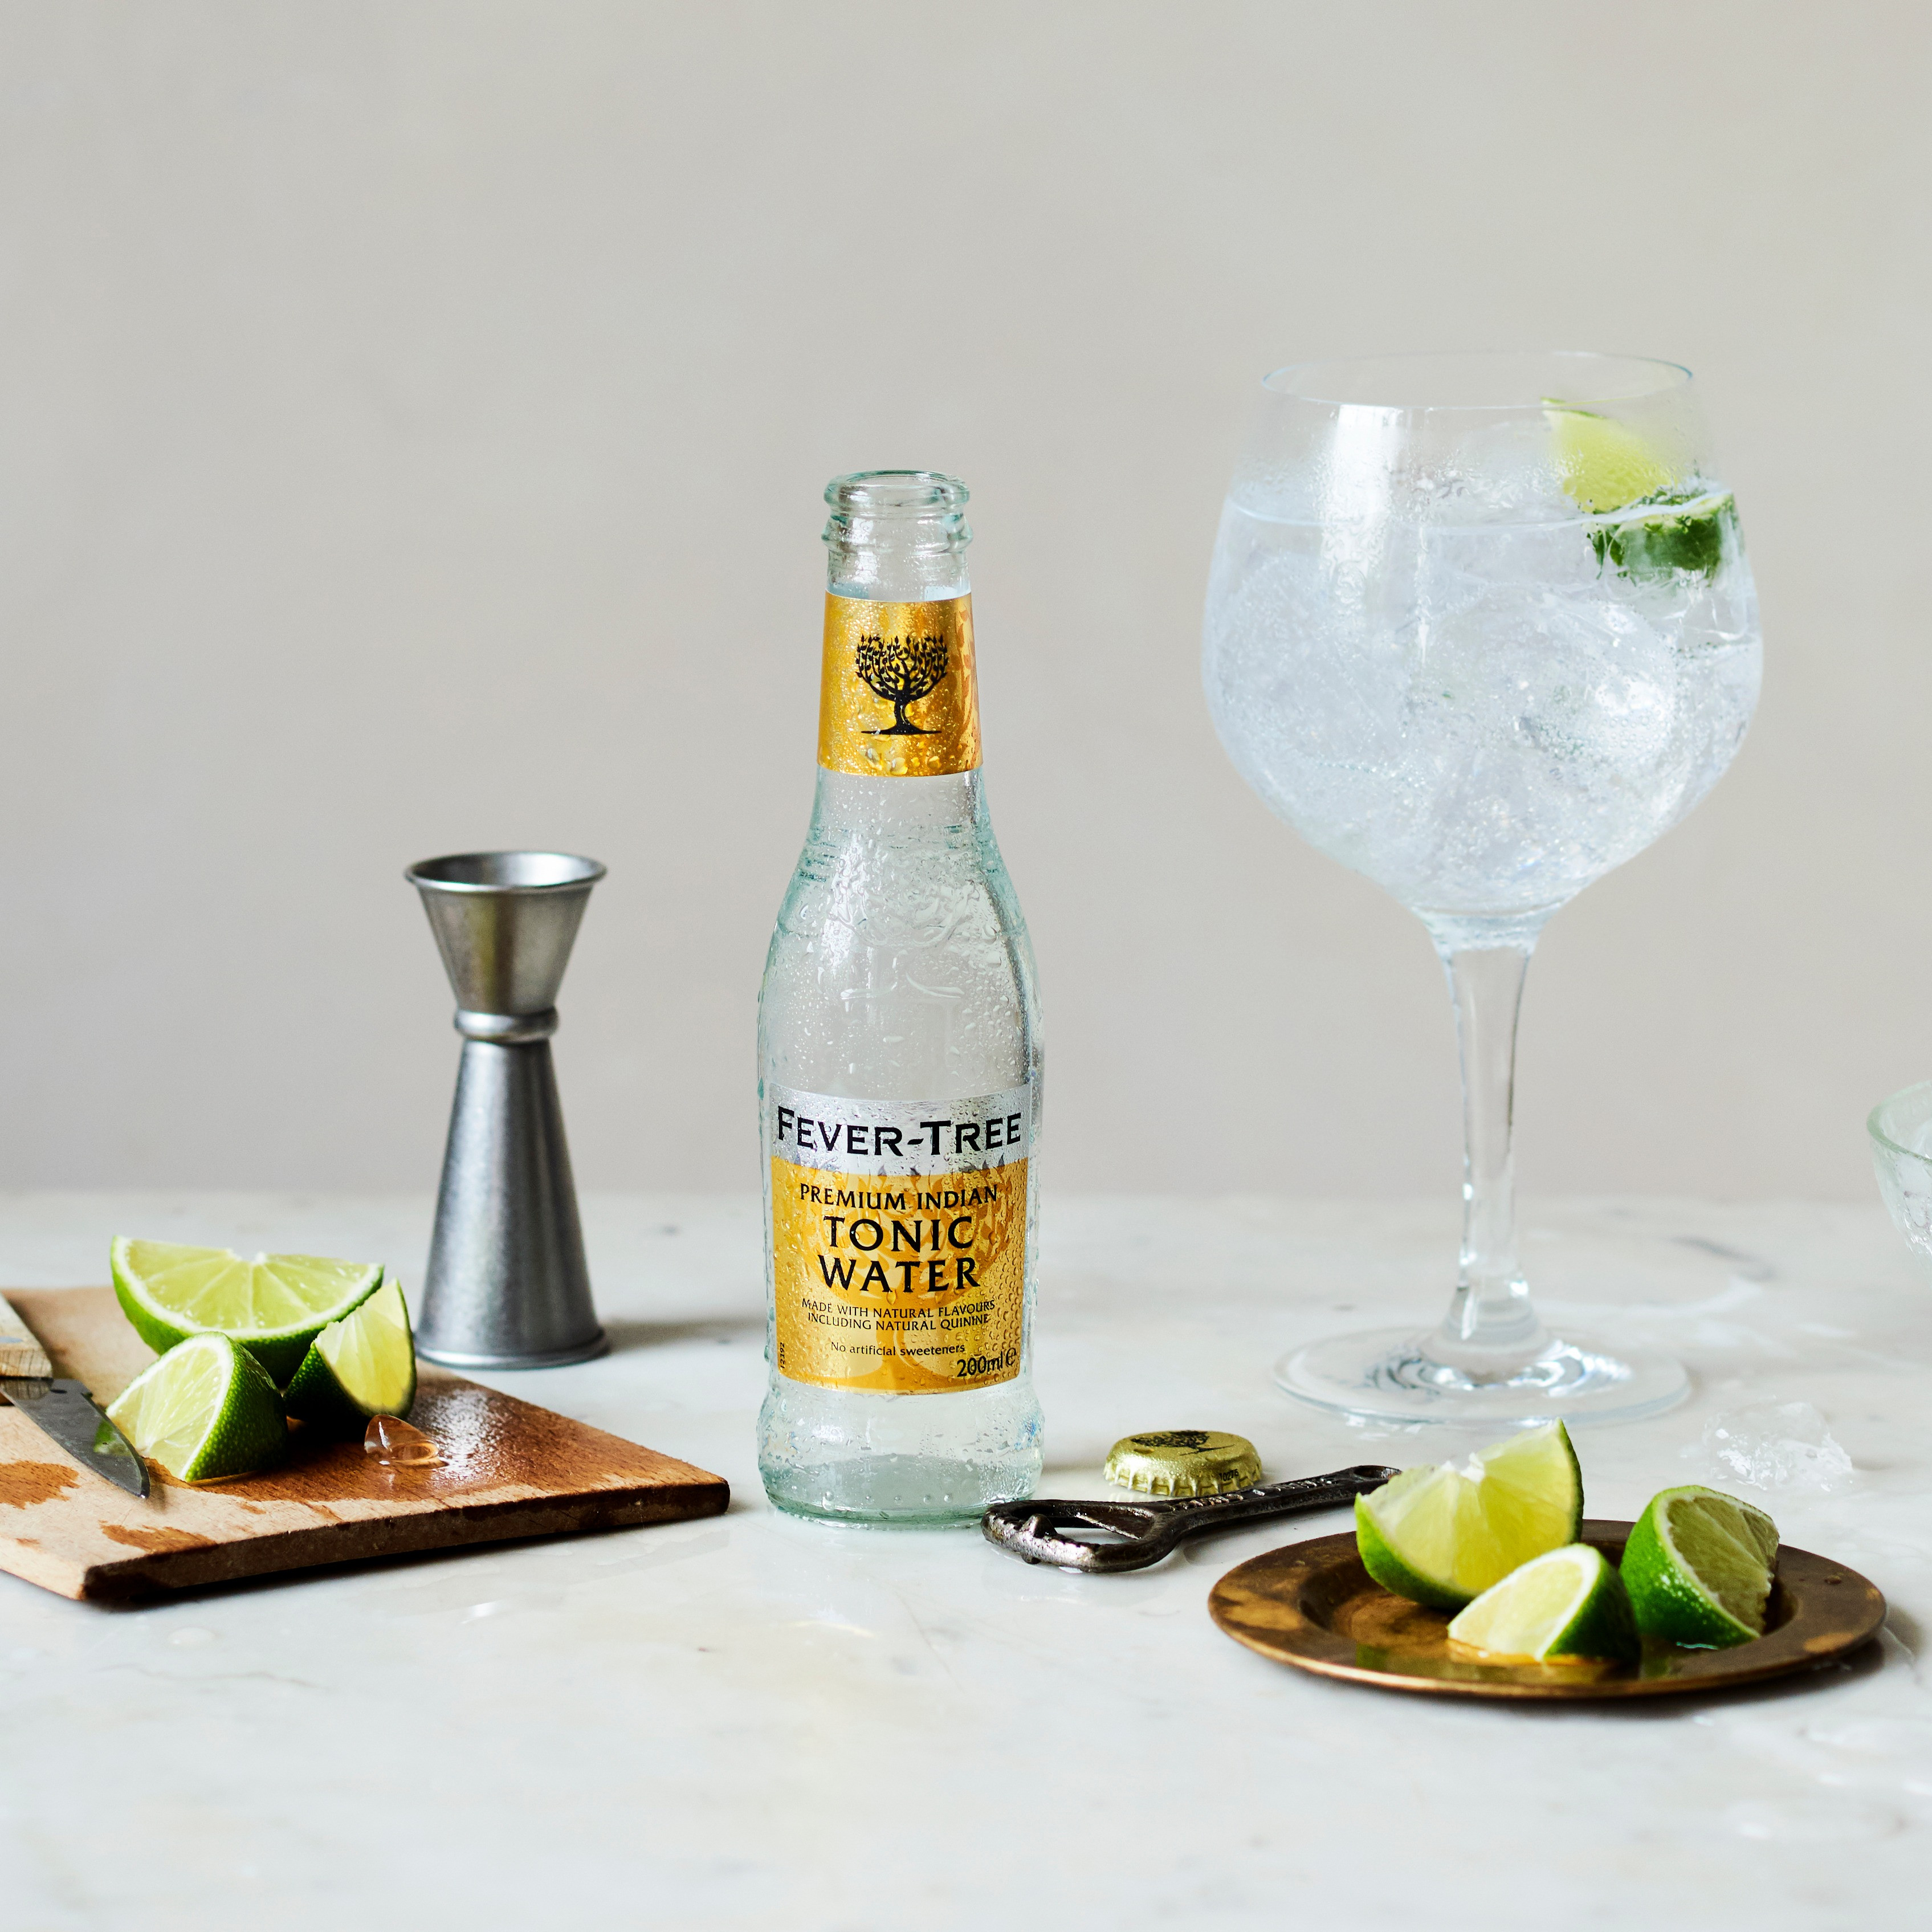 Our Ultimate Gin & Tonic Recipe